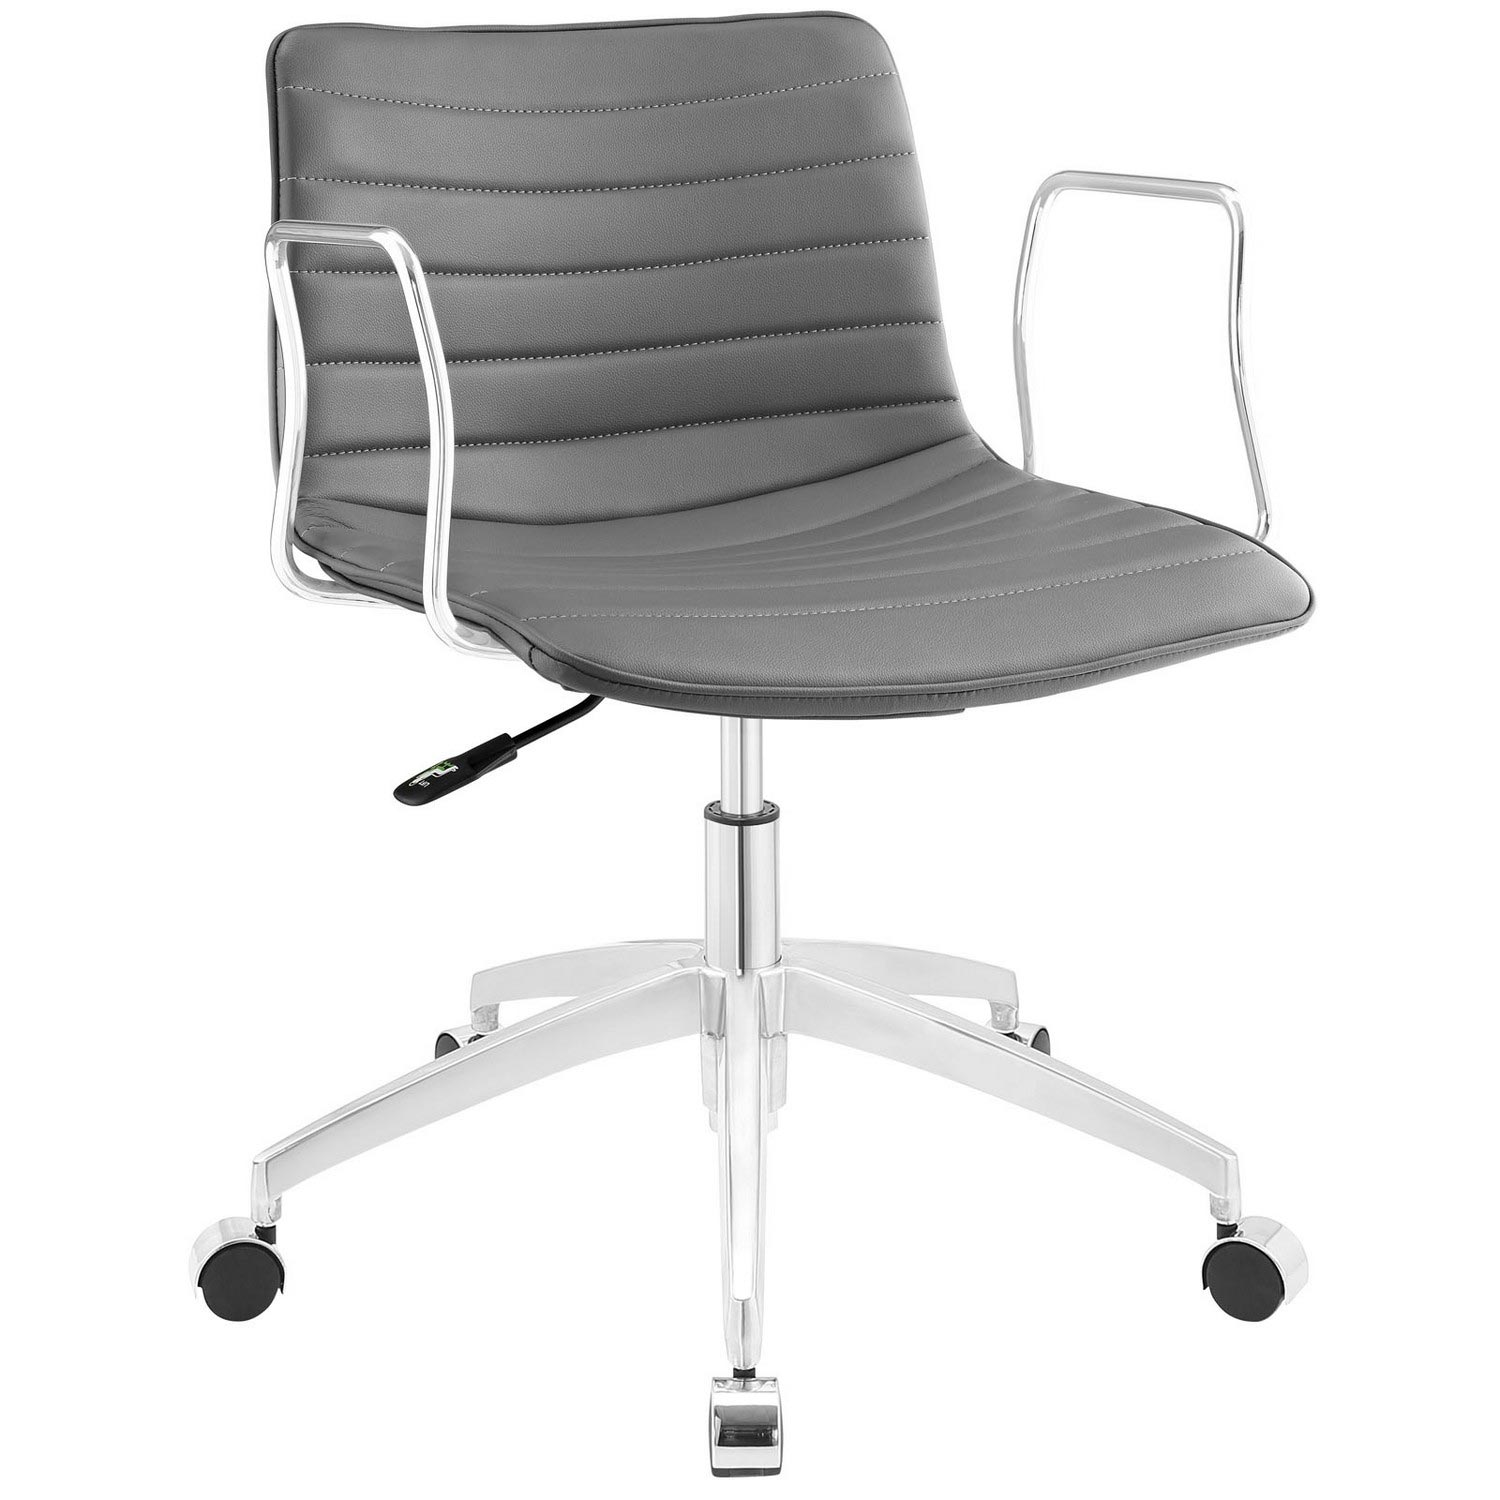 Modway Celerity Office Chair - Gray